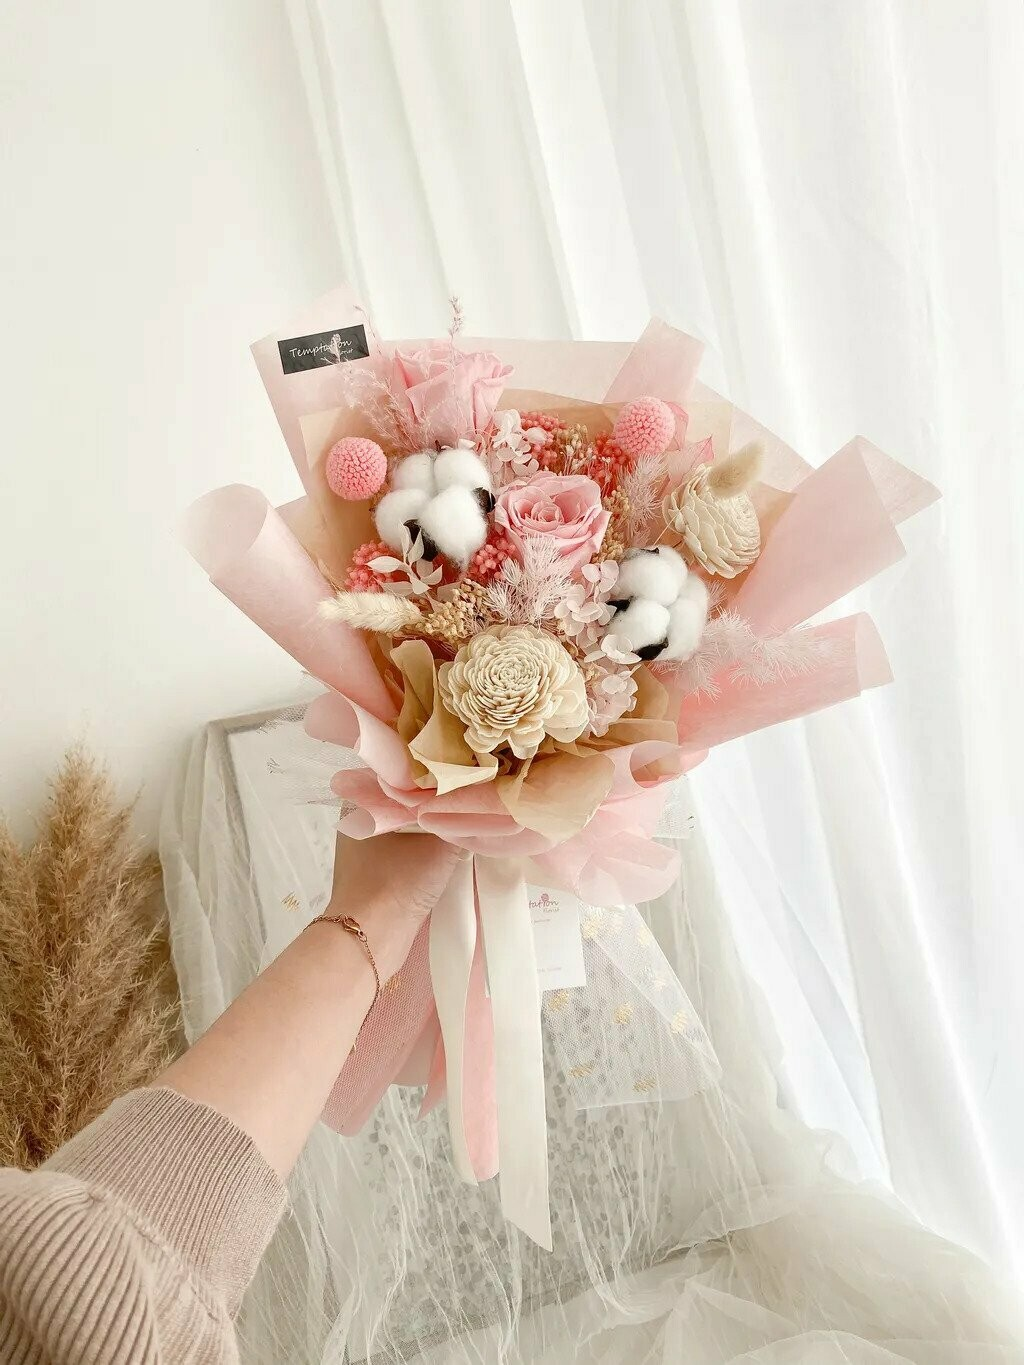 Dreamzy (By: Temptation Florist from Seremban)